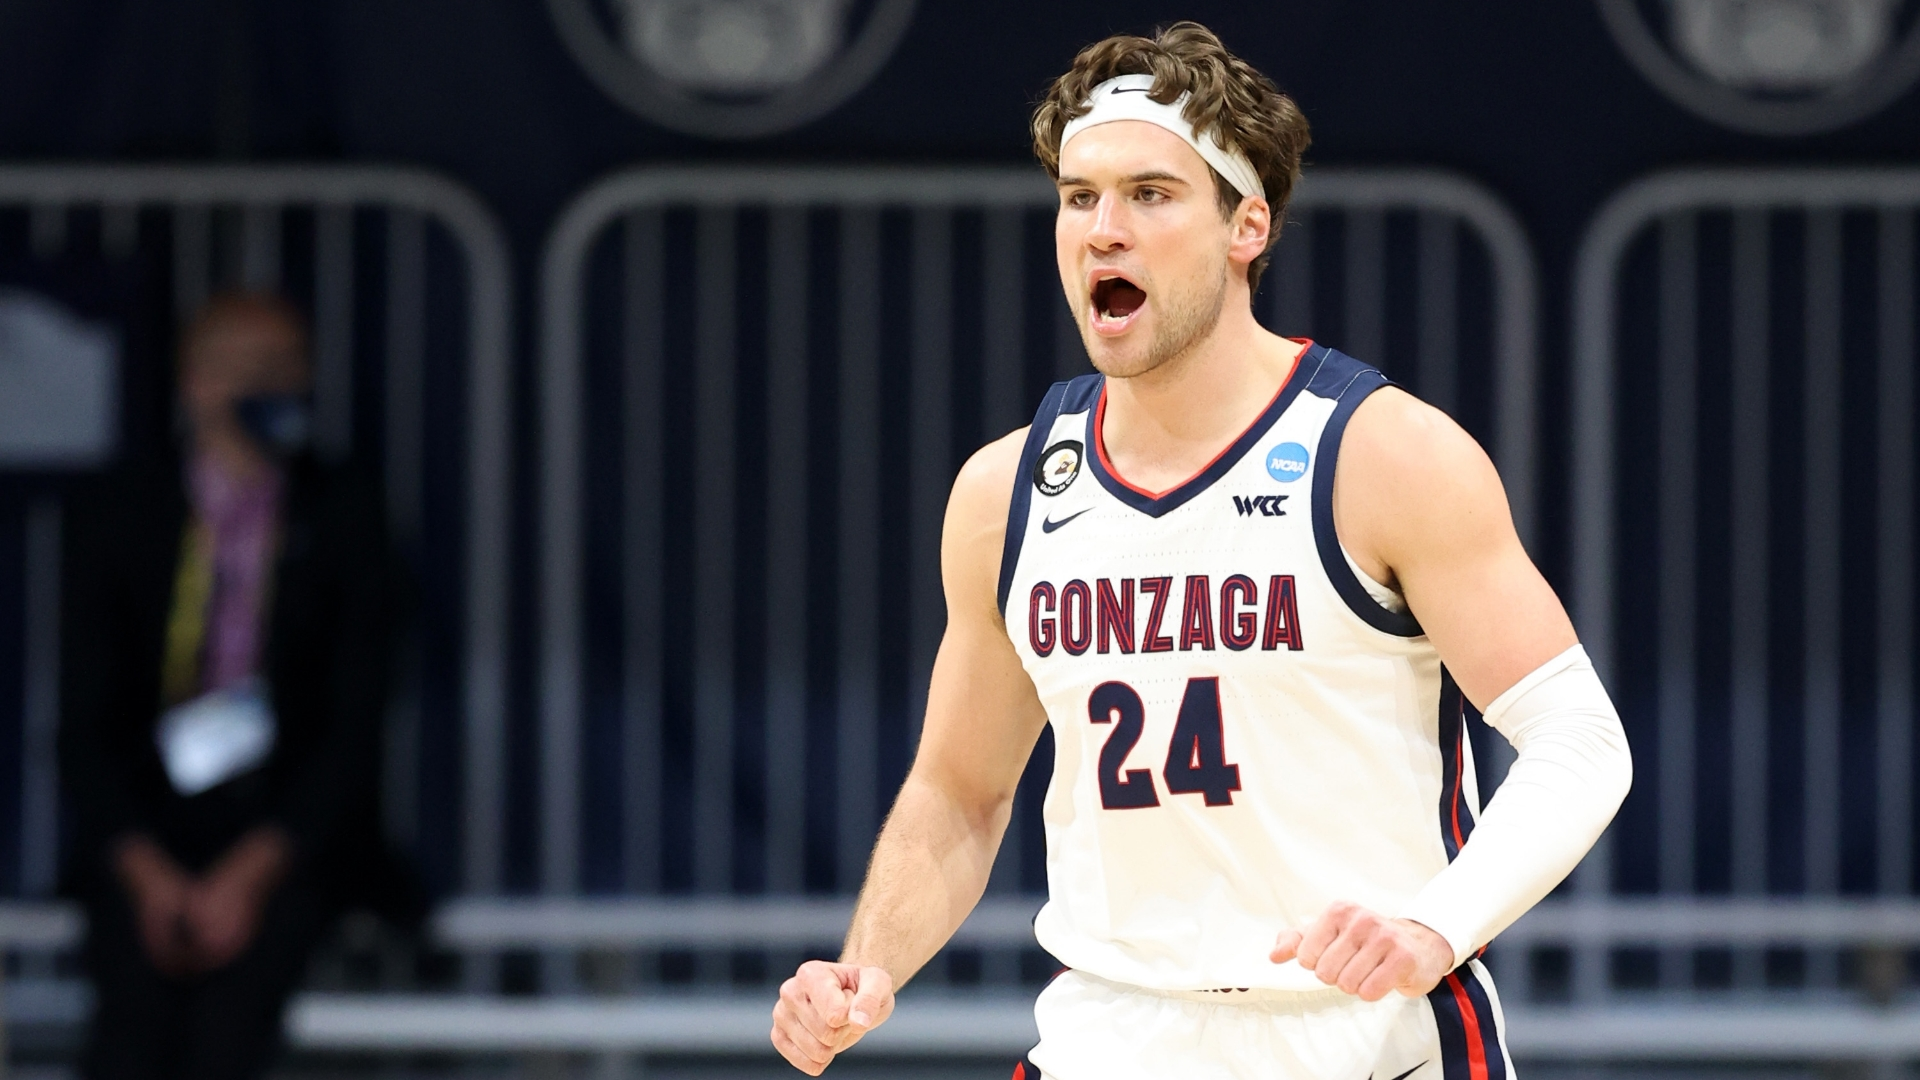 2021 NBA Draft: Corey Kispert scouting report, strengths, weaknesses and  player comparisons   NBA.com Canada   The official site of the NBA